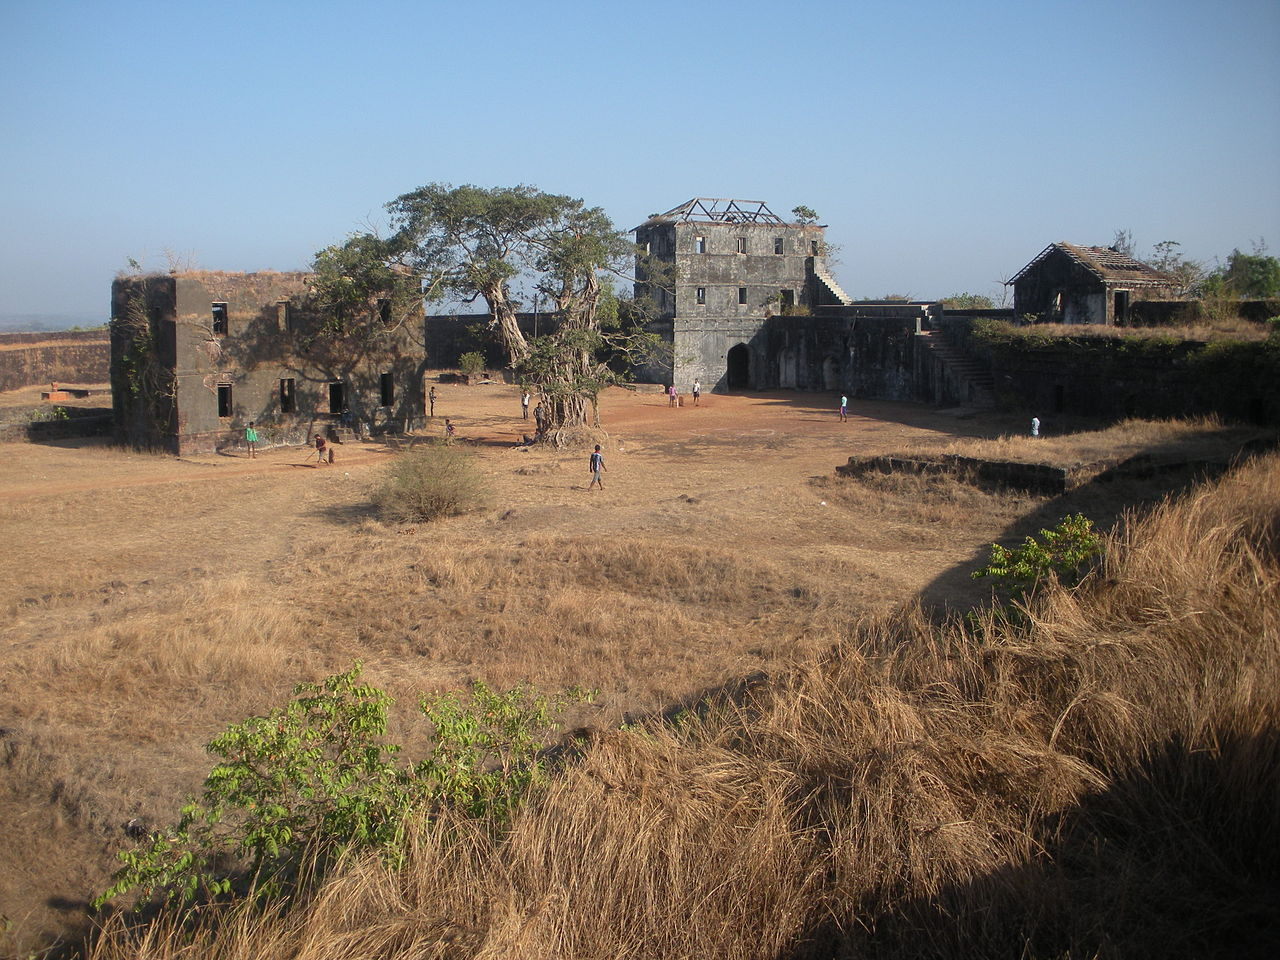 Structures Inside the Jaigad Fort